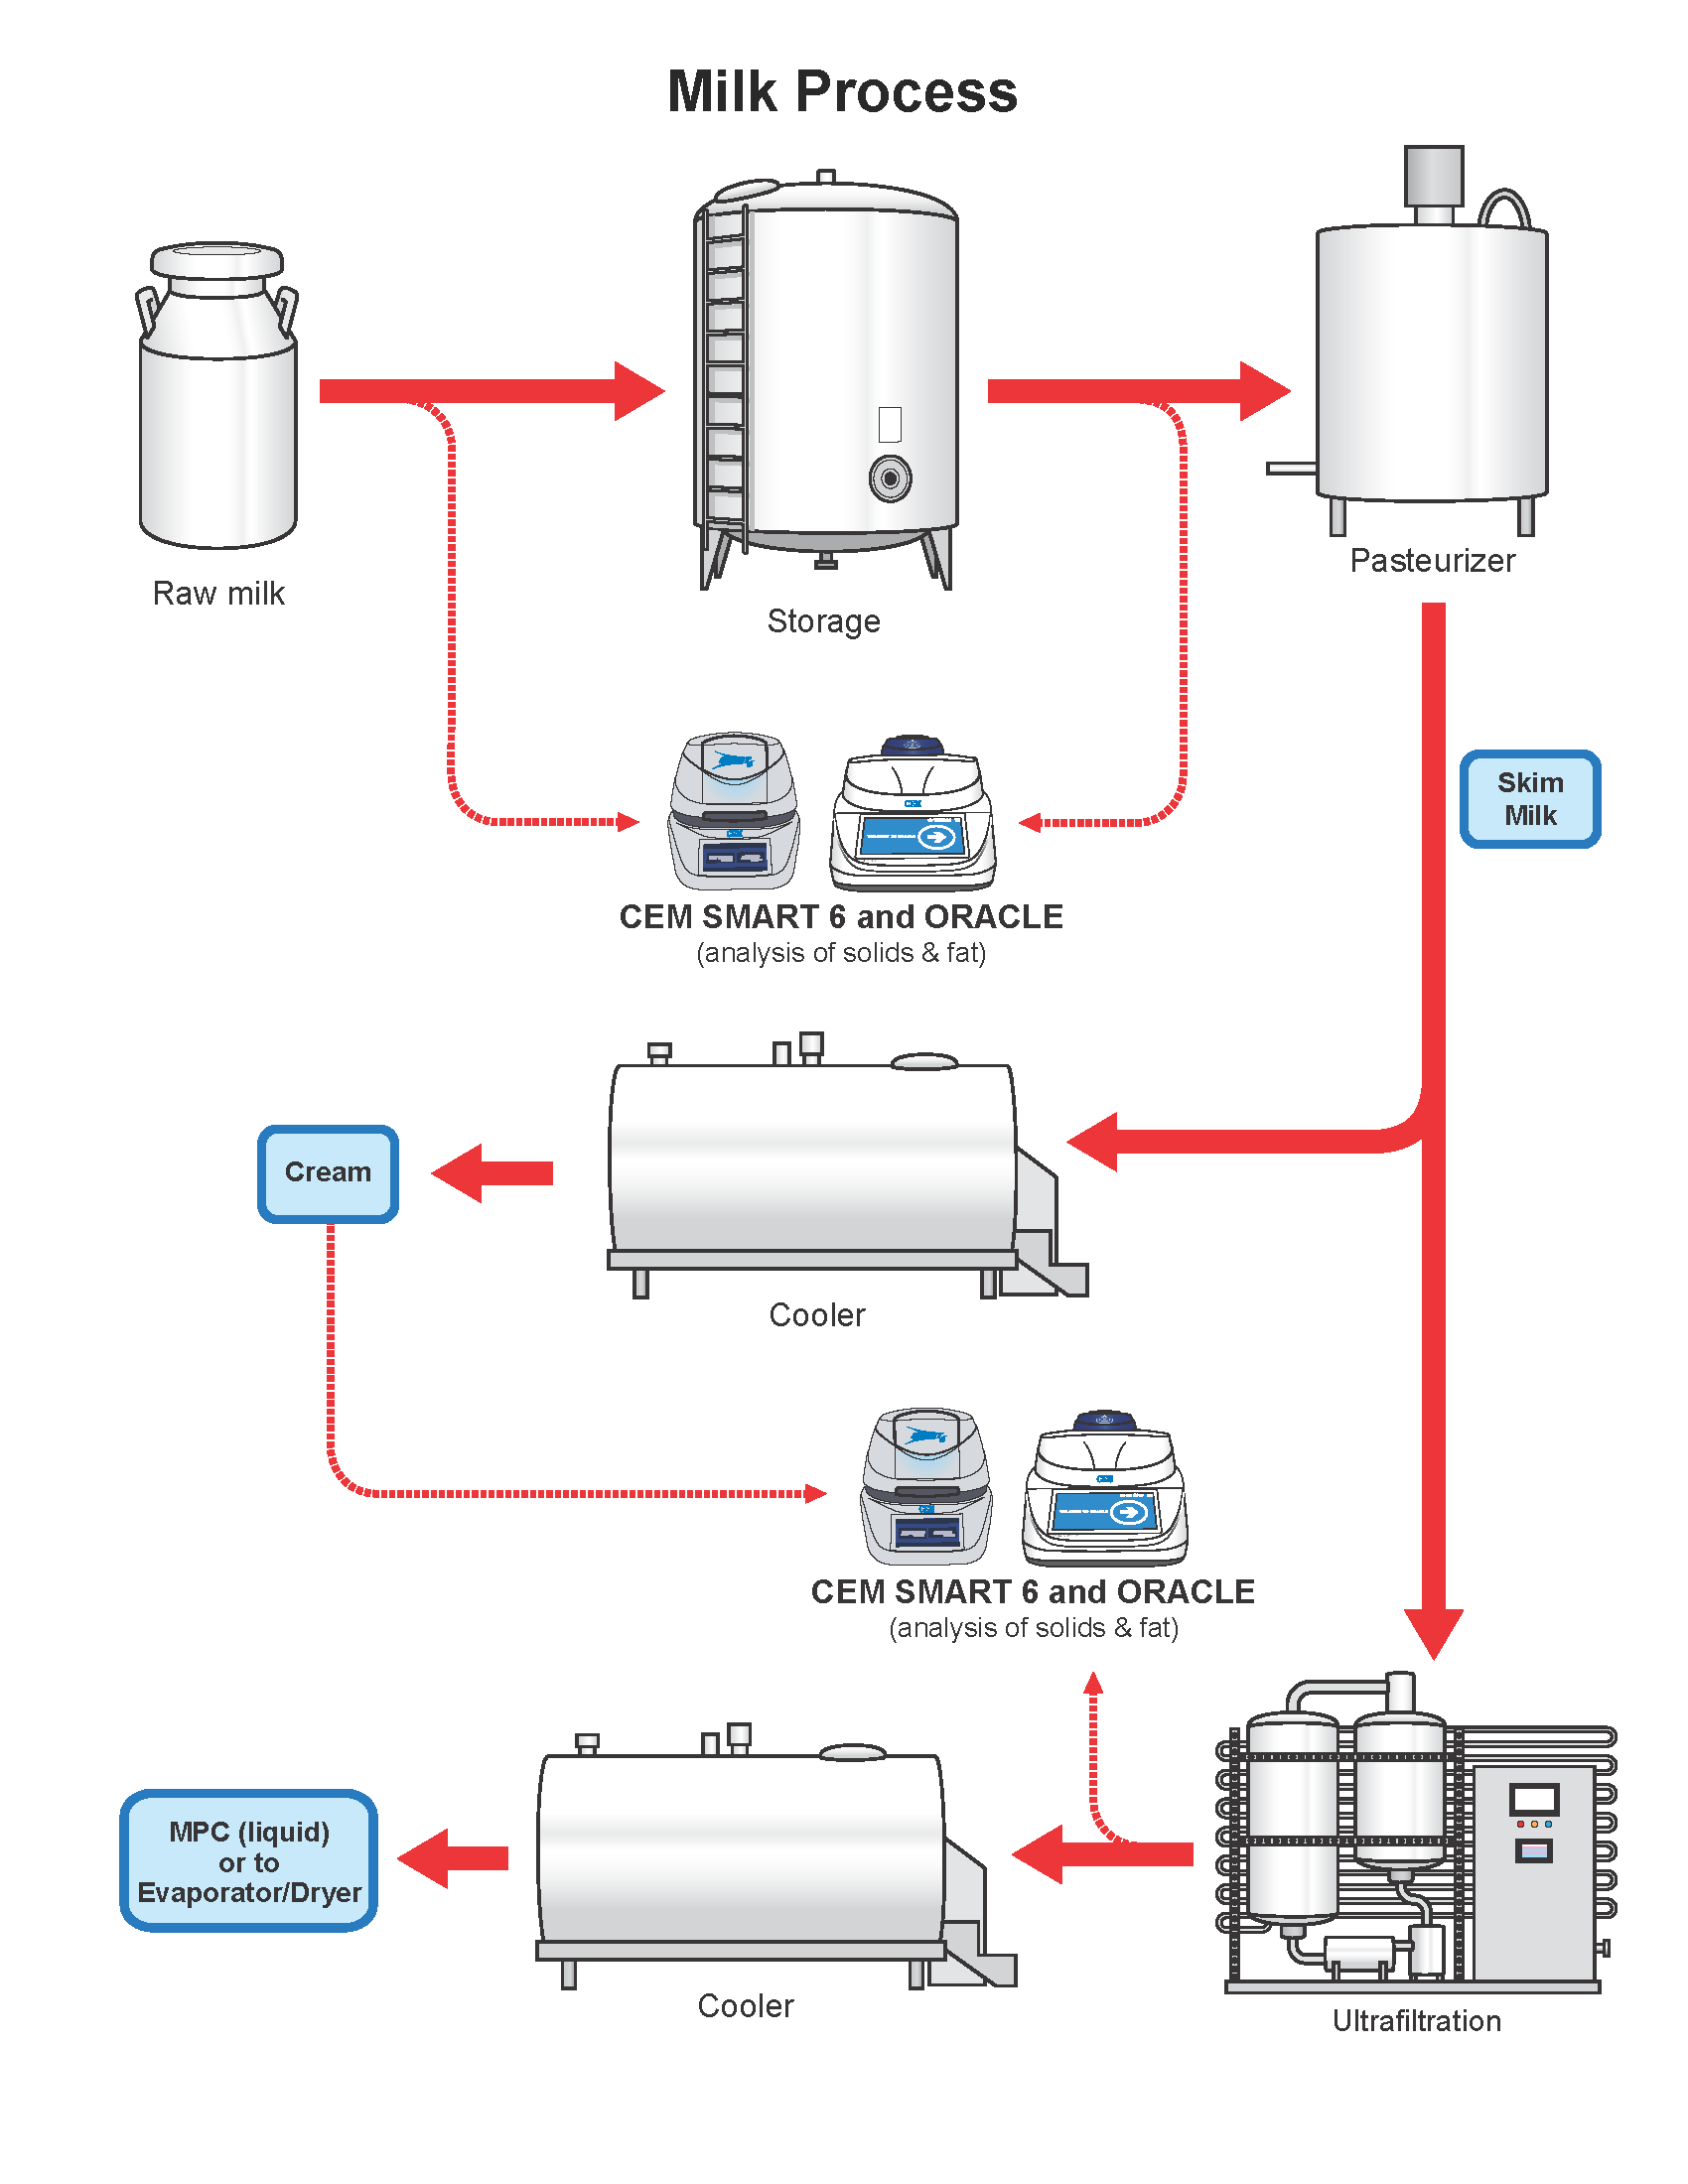 the milk flow chart gives precise details on the production process of milk  as well as an explanation of where cem process products can be implemented  to